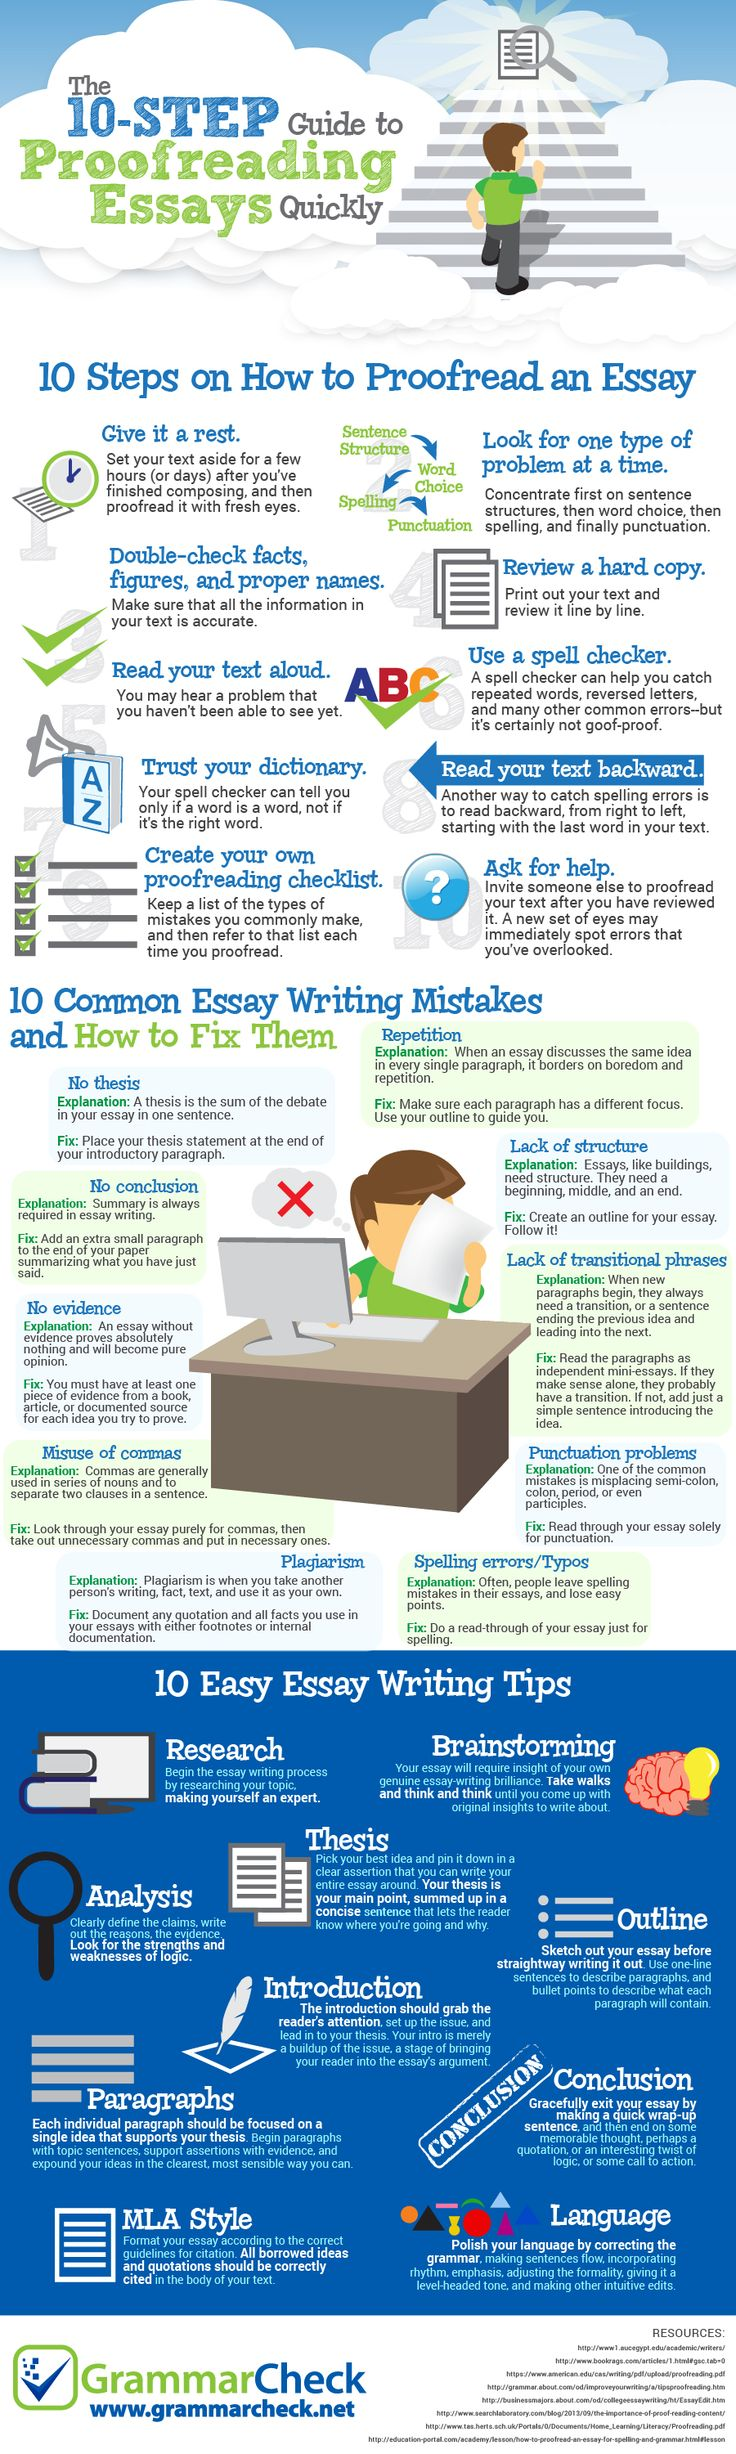 How to write an application essay really quickly